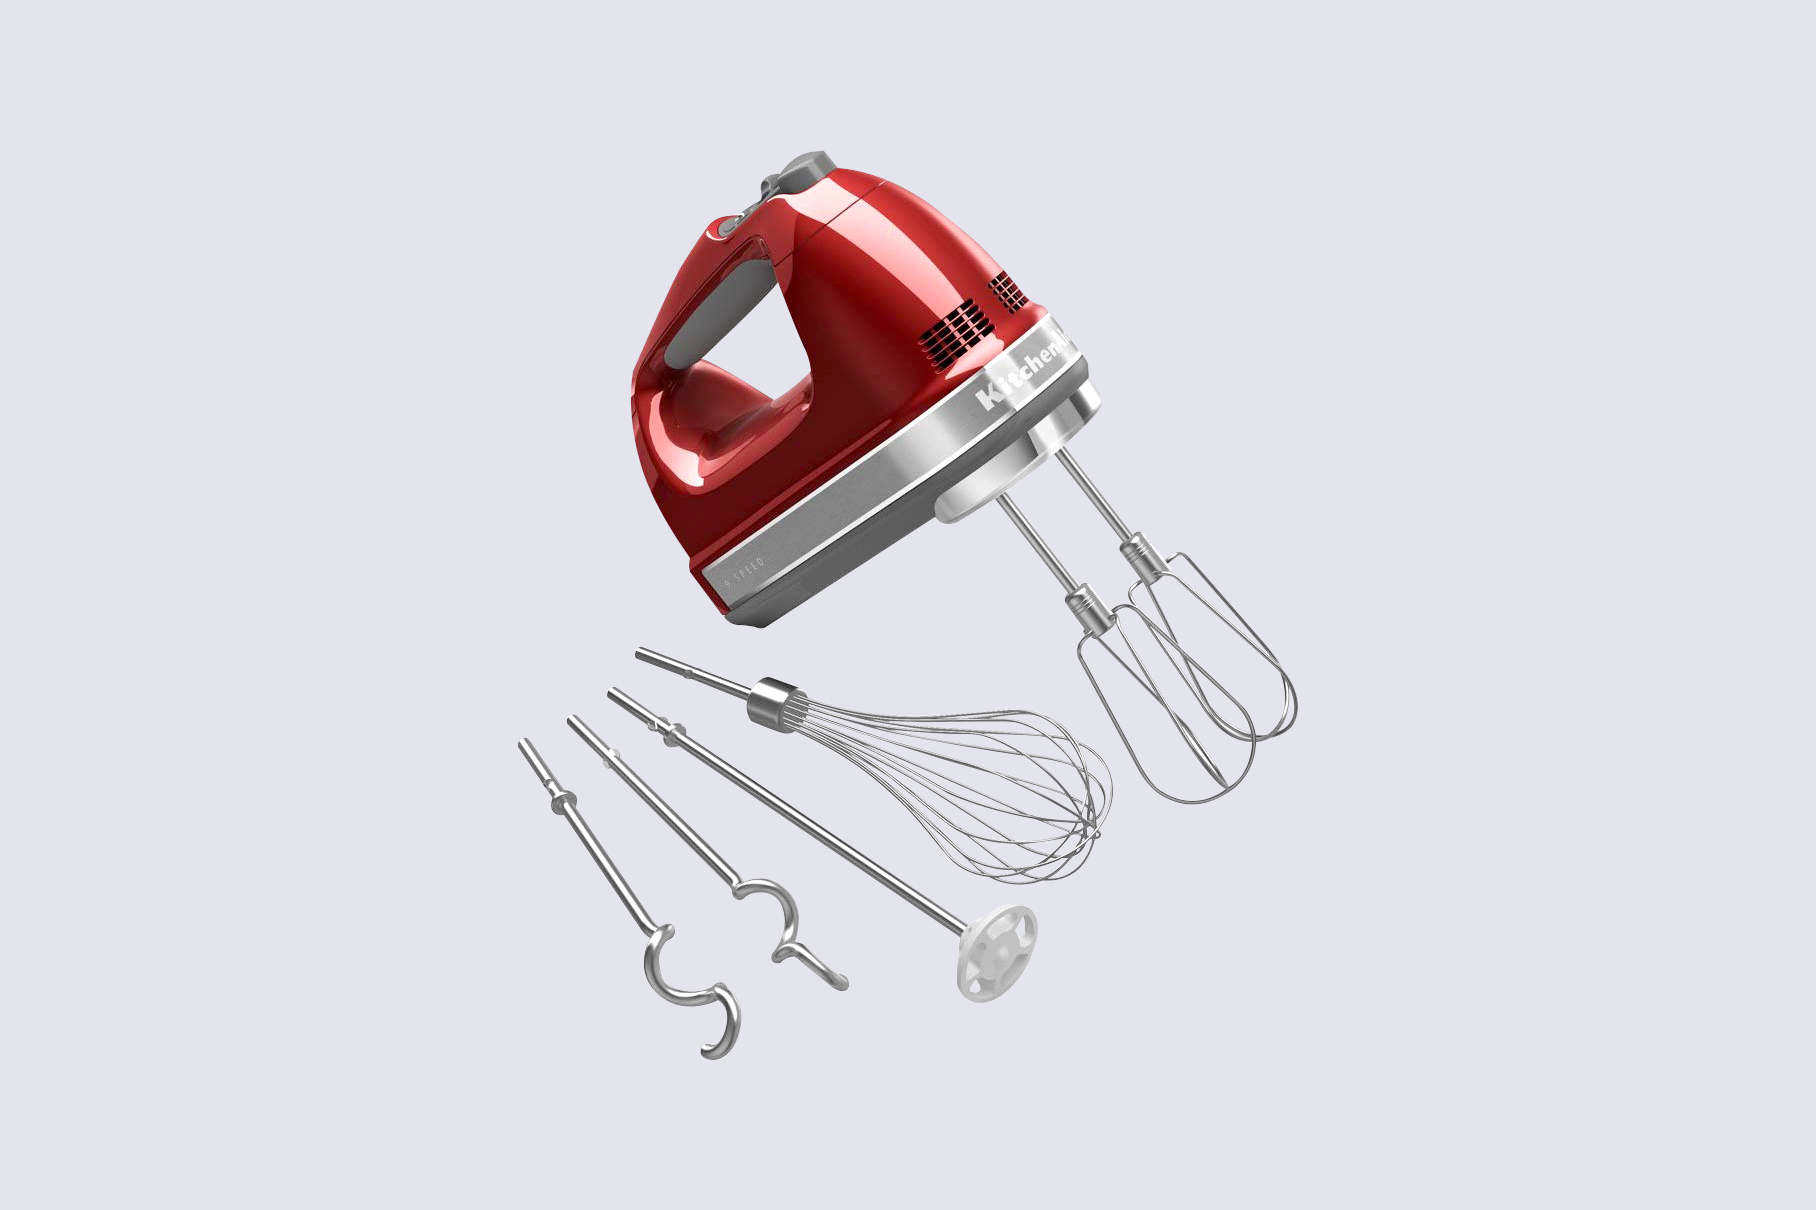 KitchenAid 9-Speed Digital Hand Mixer with Turbo Beater II Accessories and Pro Whisk in Candy Apple Red